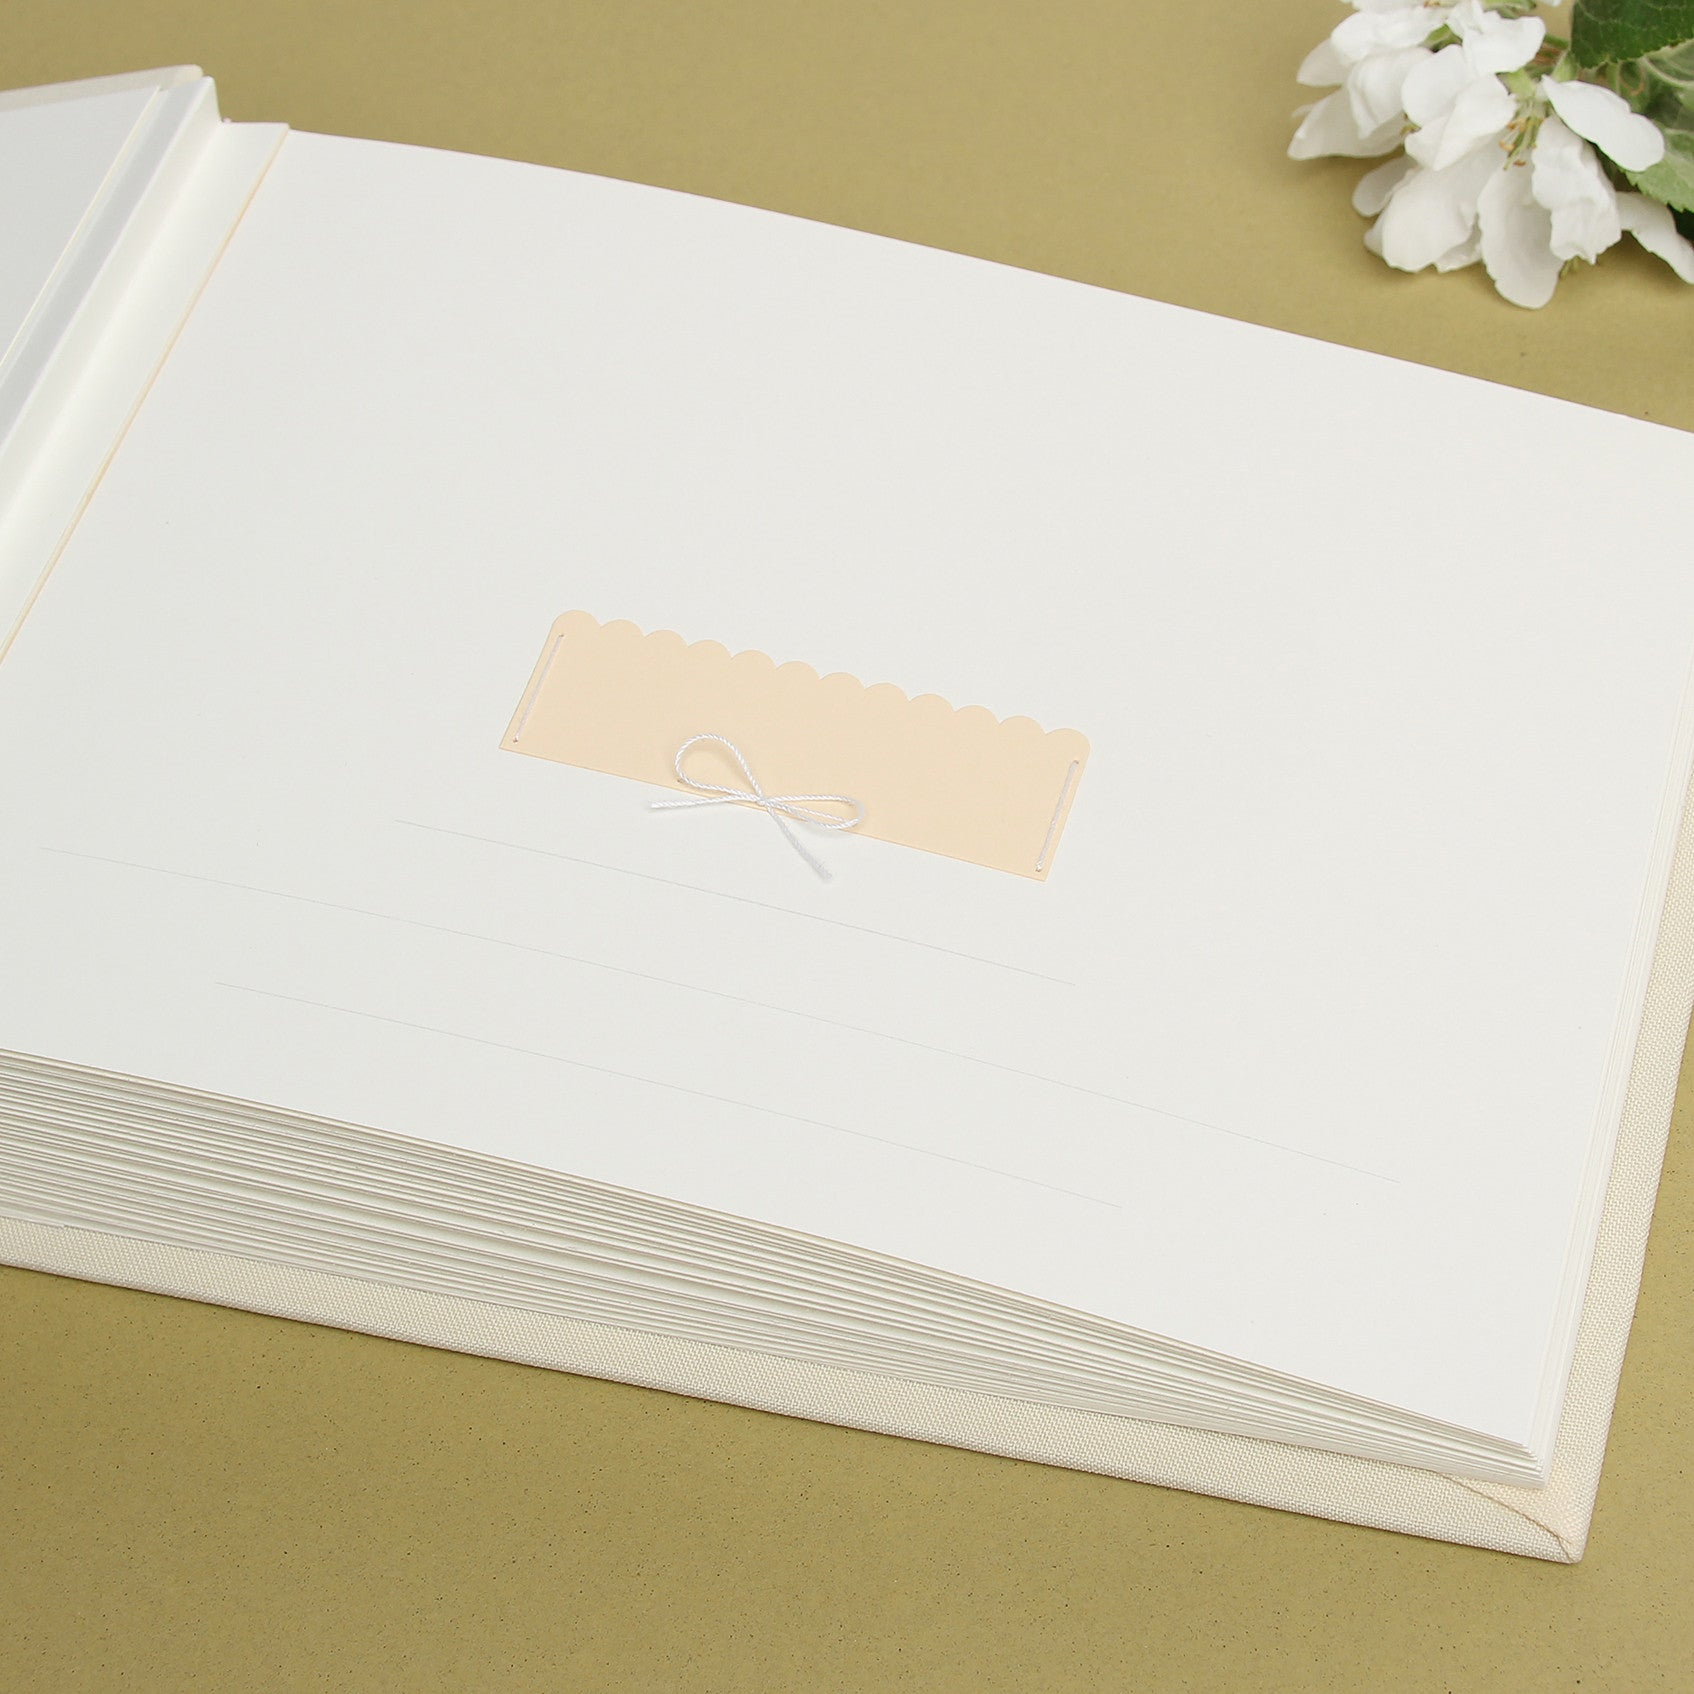 Instant Guest Book Sign in Book Album Ivory with Paper Label - Liumy